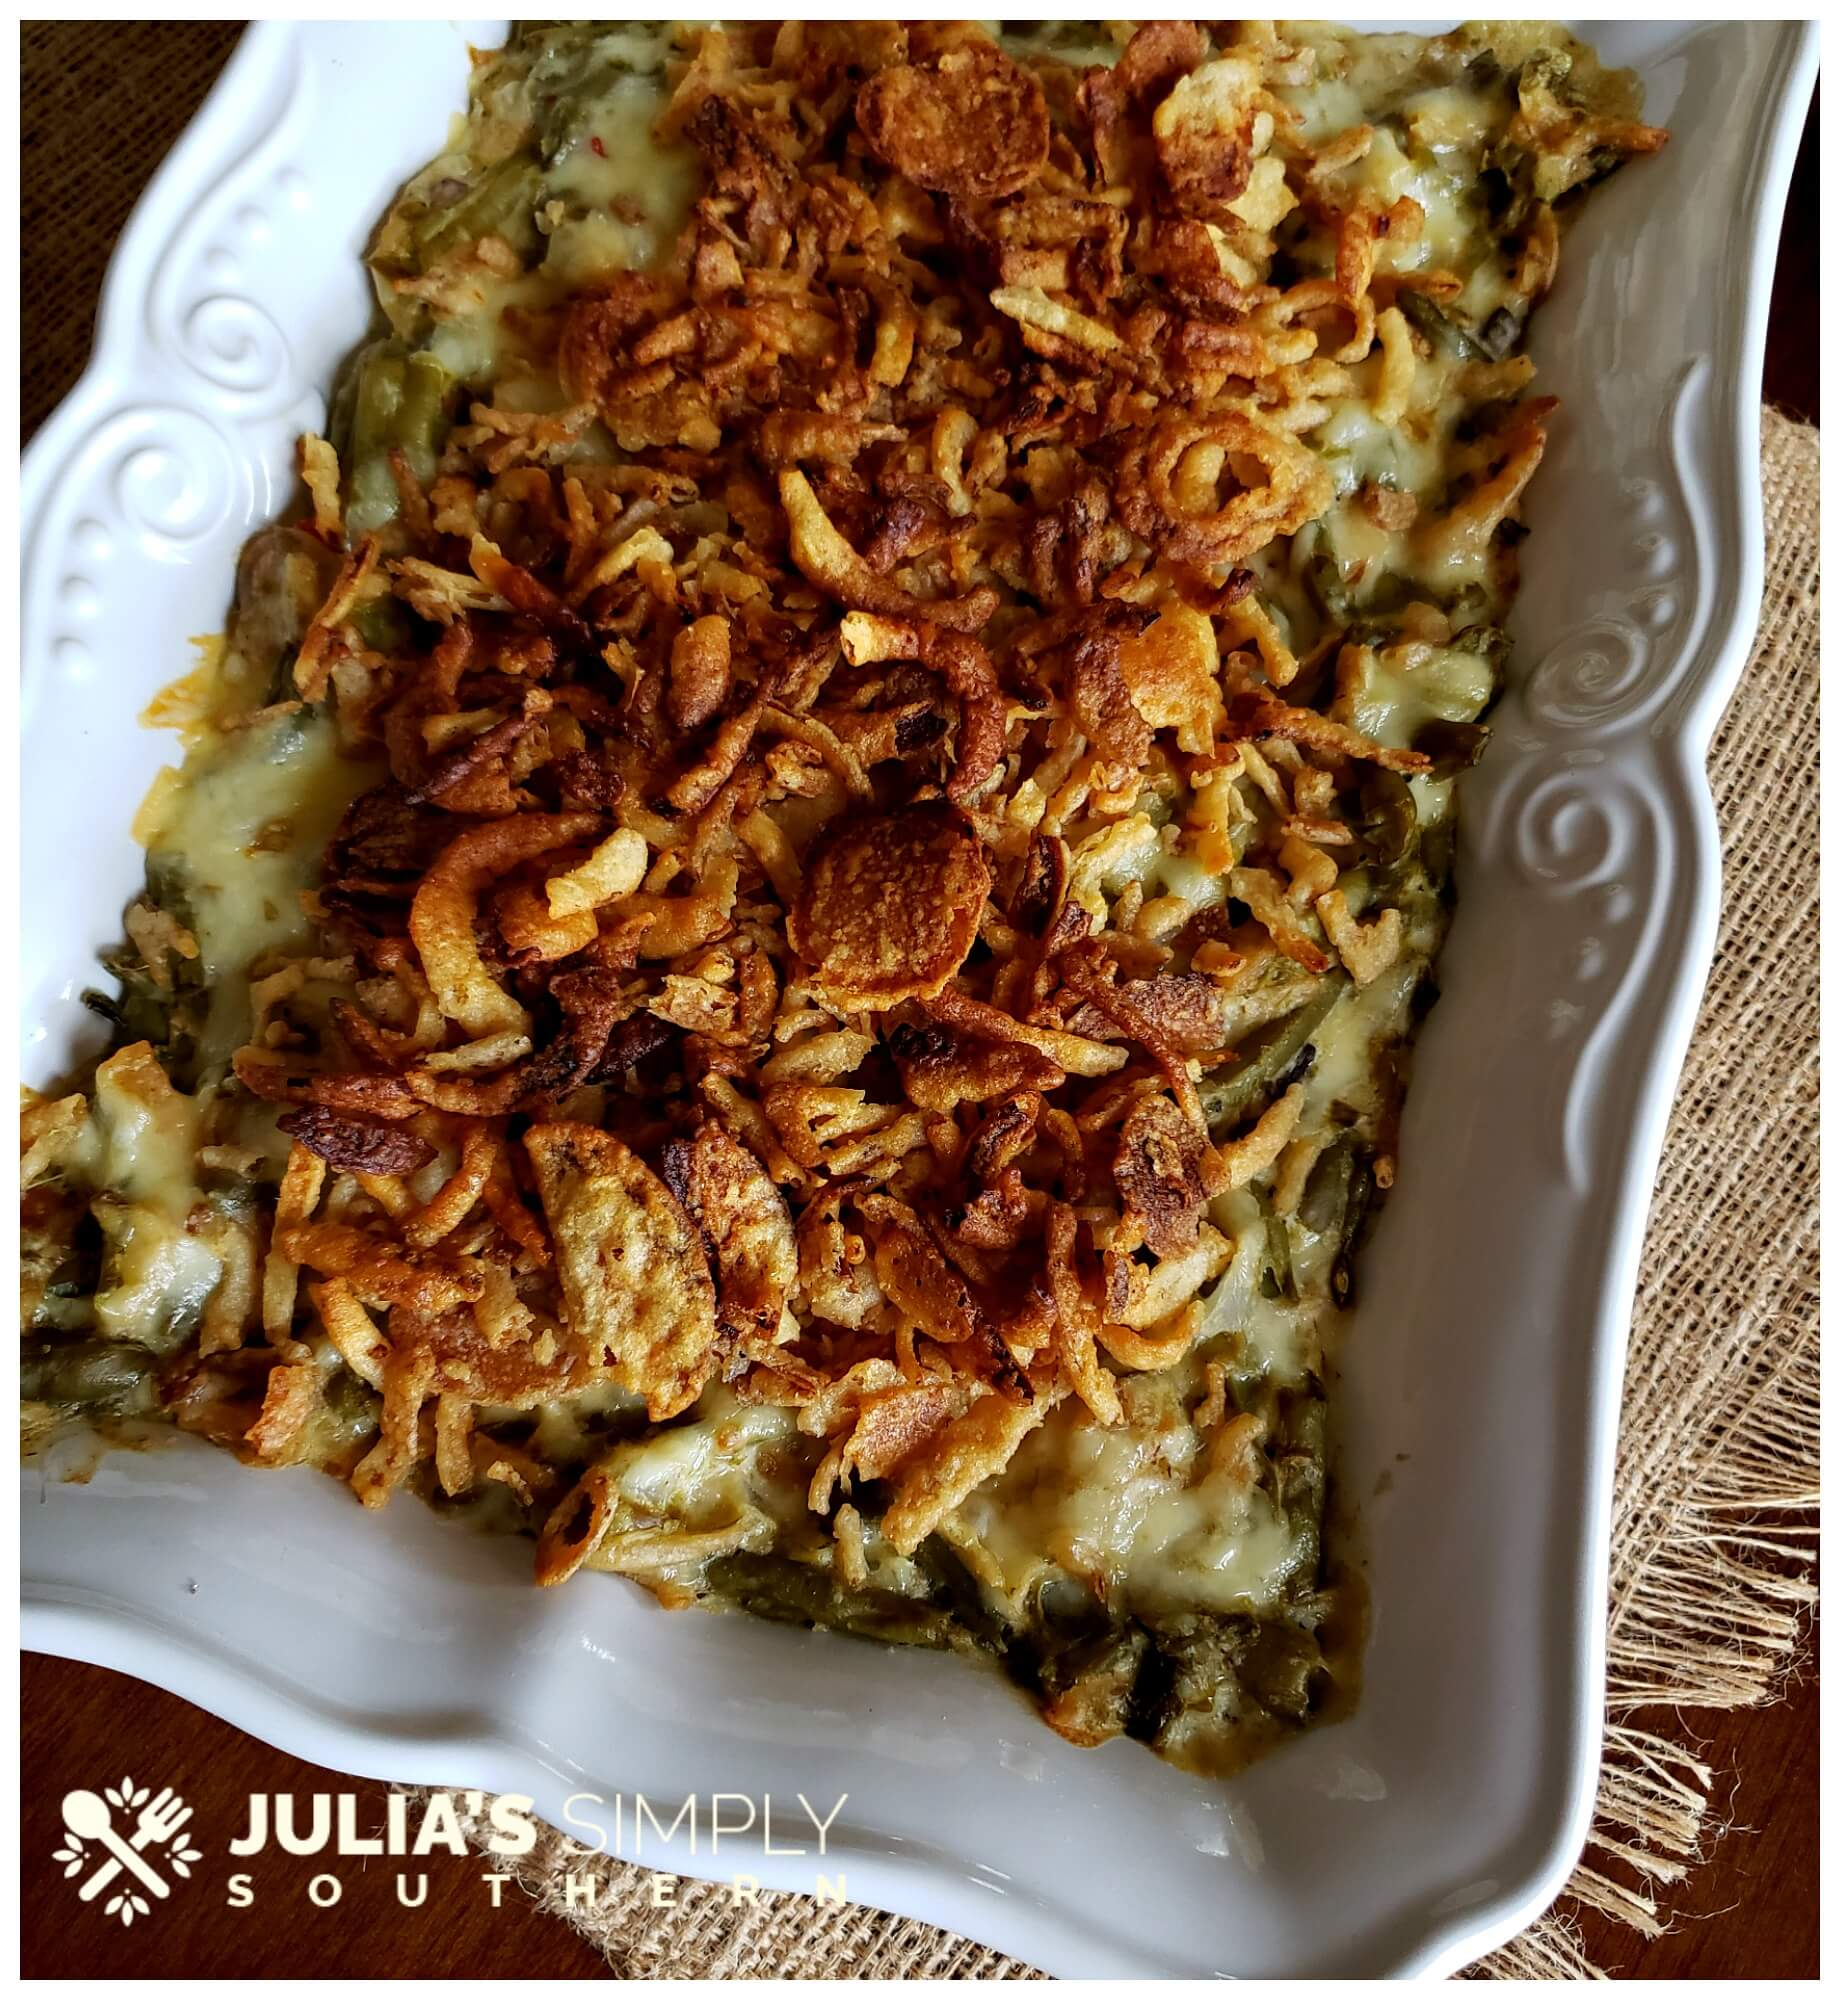 The Ultimate Holiday Green Bean Casserole Recipe - So delicious and easy